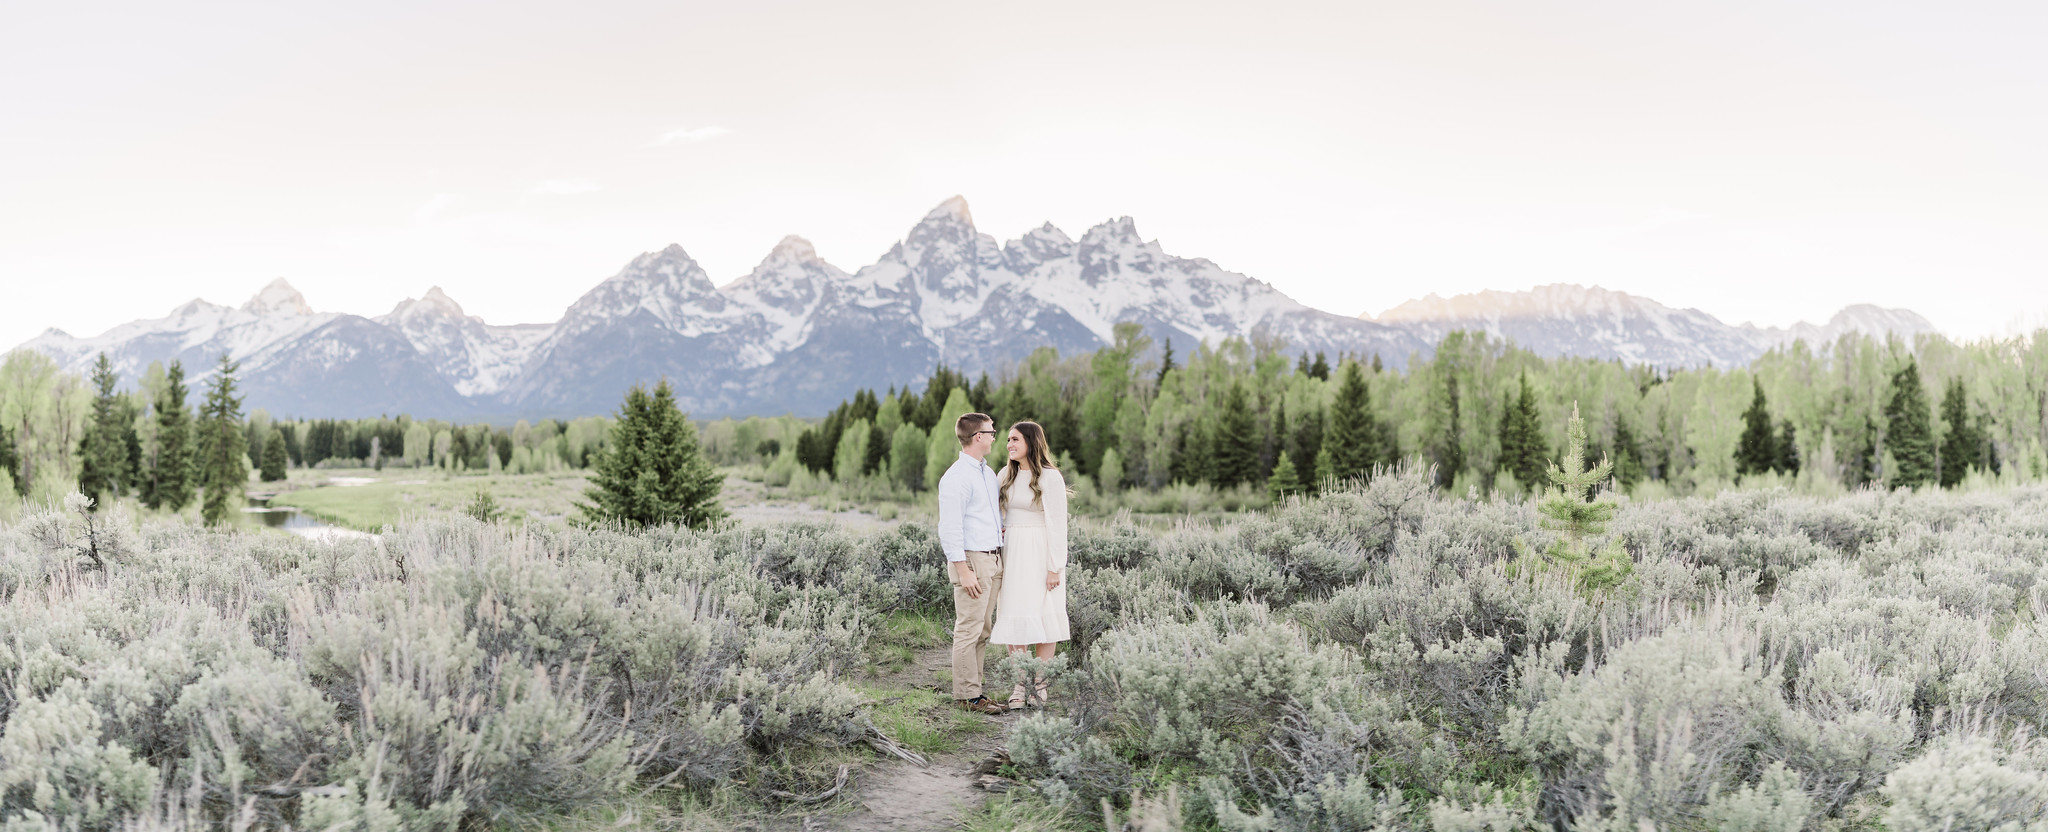 Grand Teton National Park photographer Jackson Hole Elopement and Couples Photographer